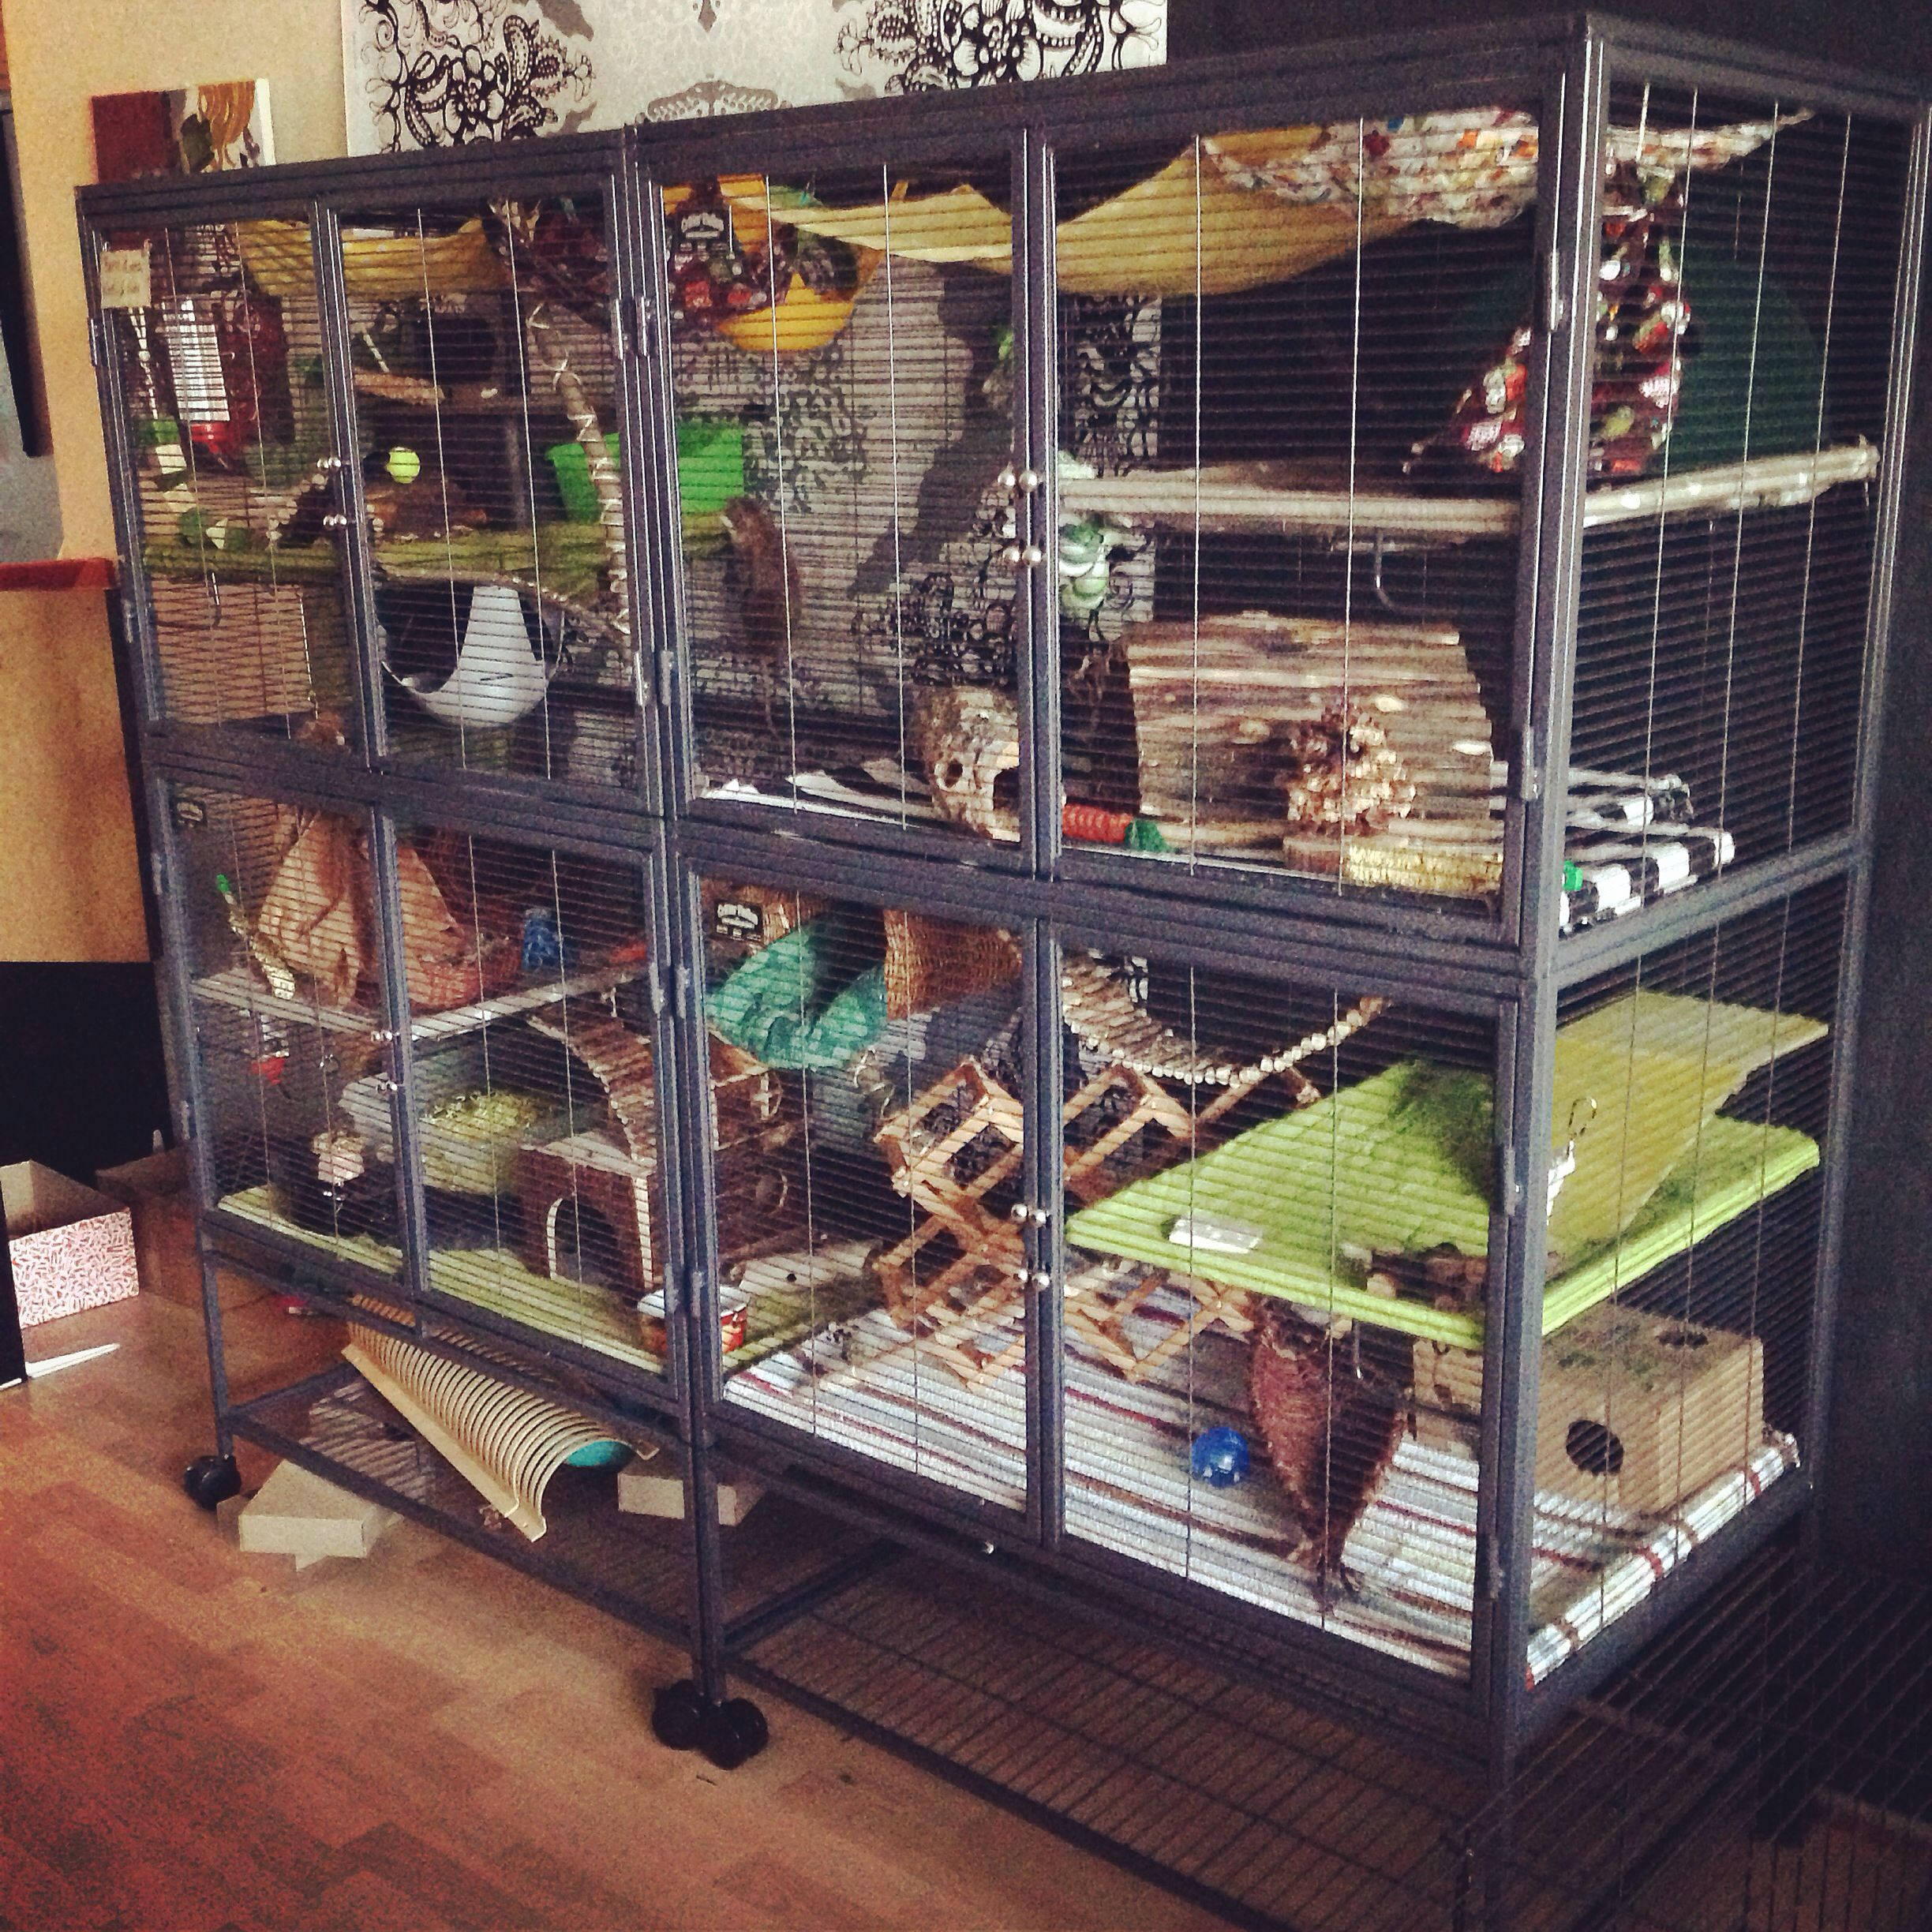 Monster Cage Two Double Critternation Cages Quadcage Diy Oh Dear Neville And Draco Would Love This Ferret Cage Rat Cage Pet Rat Cages